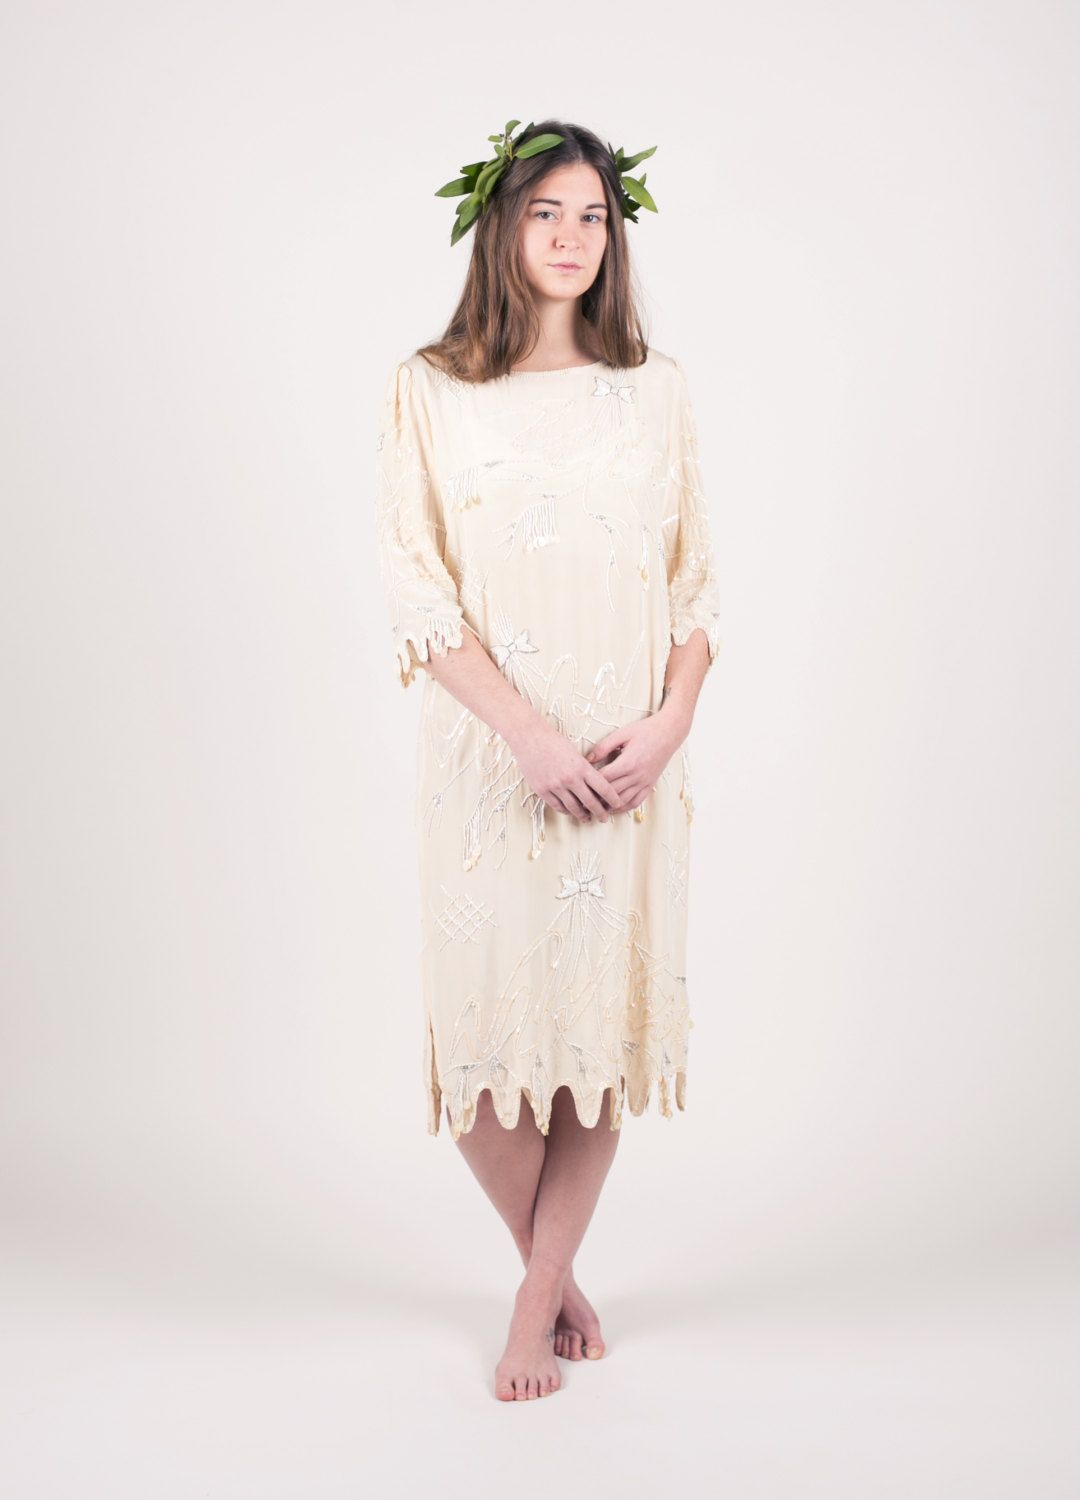 Beaded boho wedding dress cream cocktail dress by shopfuture